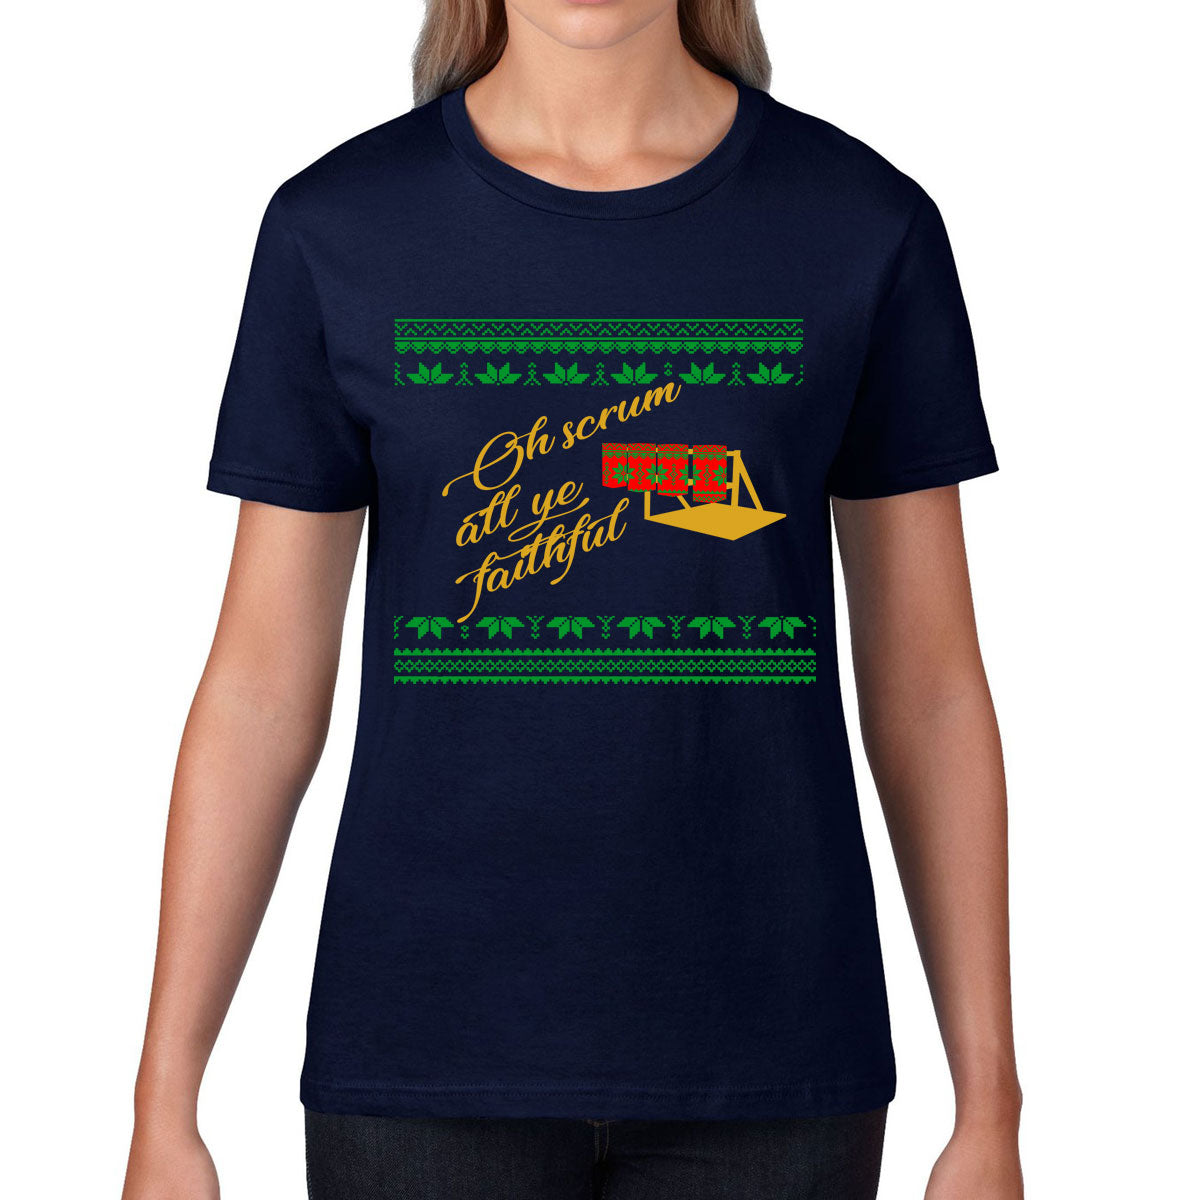 Women's Scrum All Ye Faithful Rugby Christmas Tee - First XV rugbystuff.com